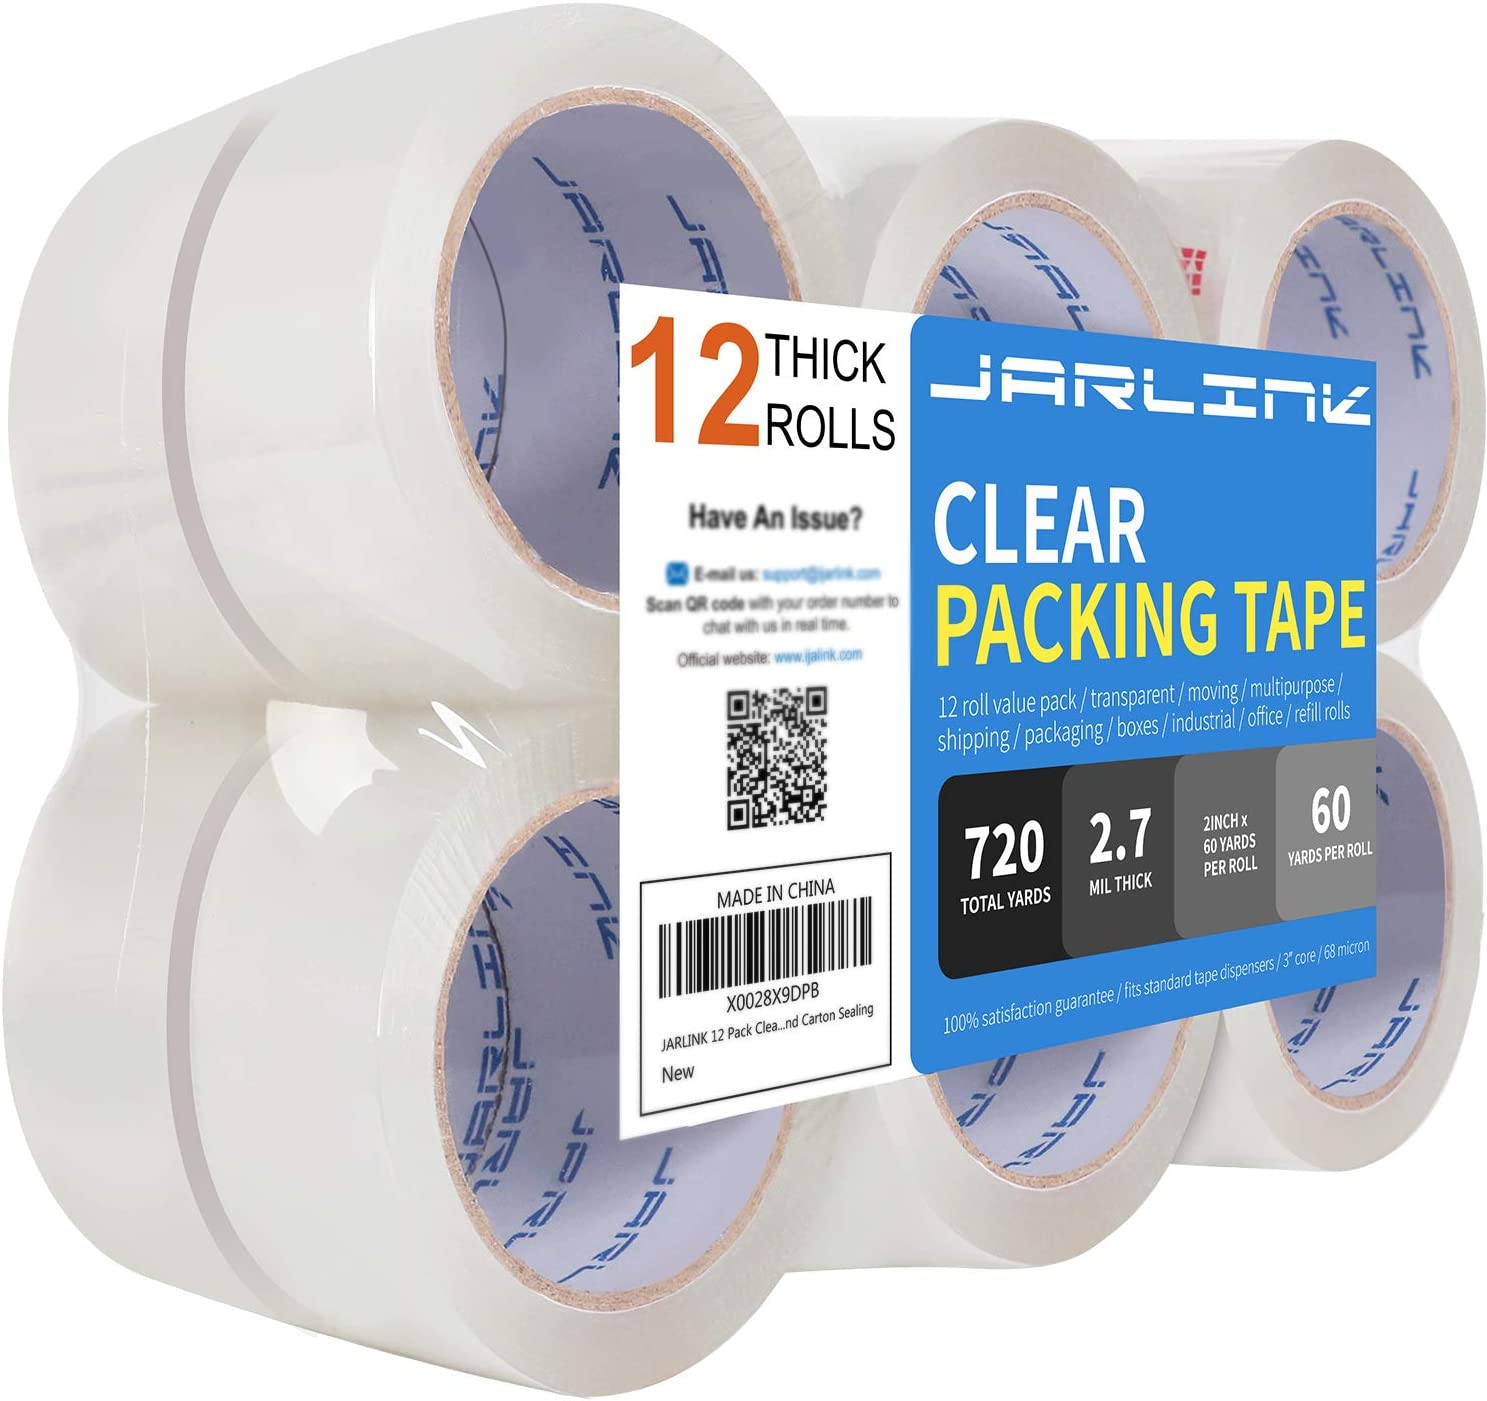 Manufacturer Sell Quality Assured Perfectape Packing Tape Clear 6 Rolls Shipping Packaging Tape Refill Rolls 1.88 x 50m Total 300m